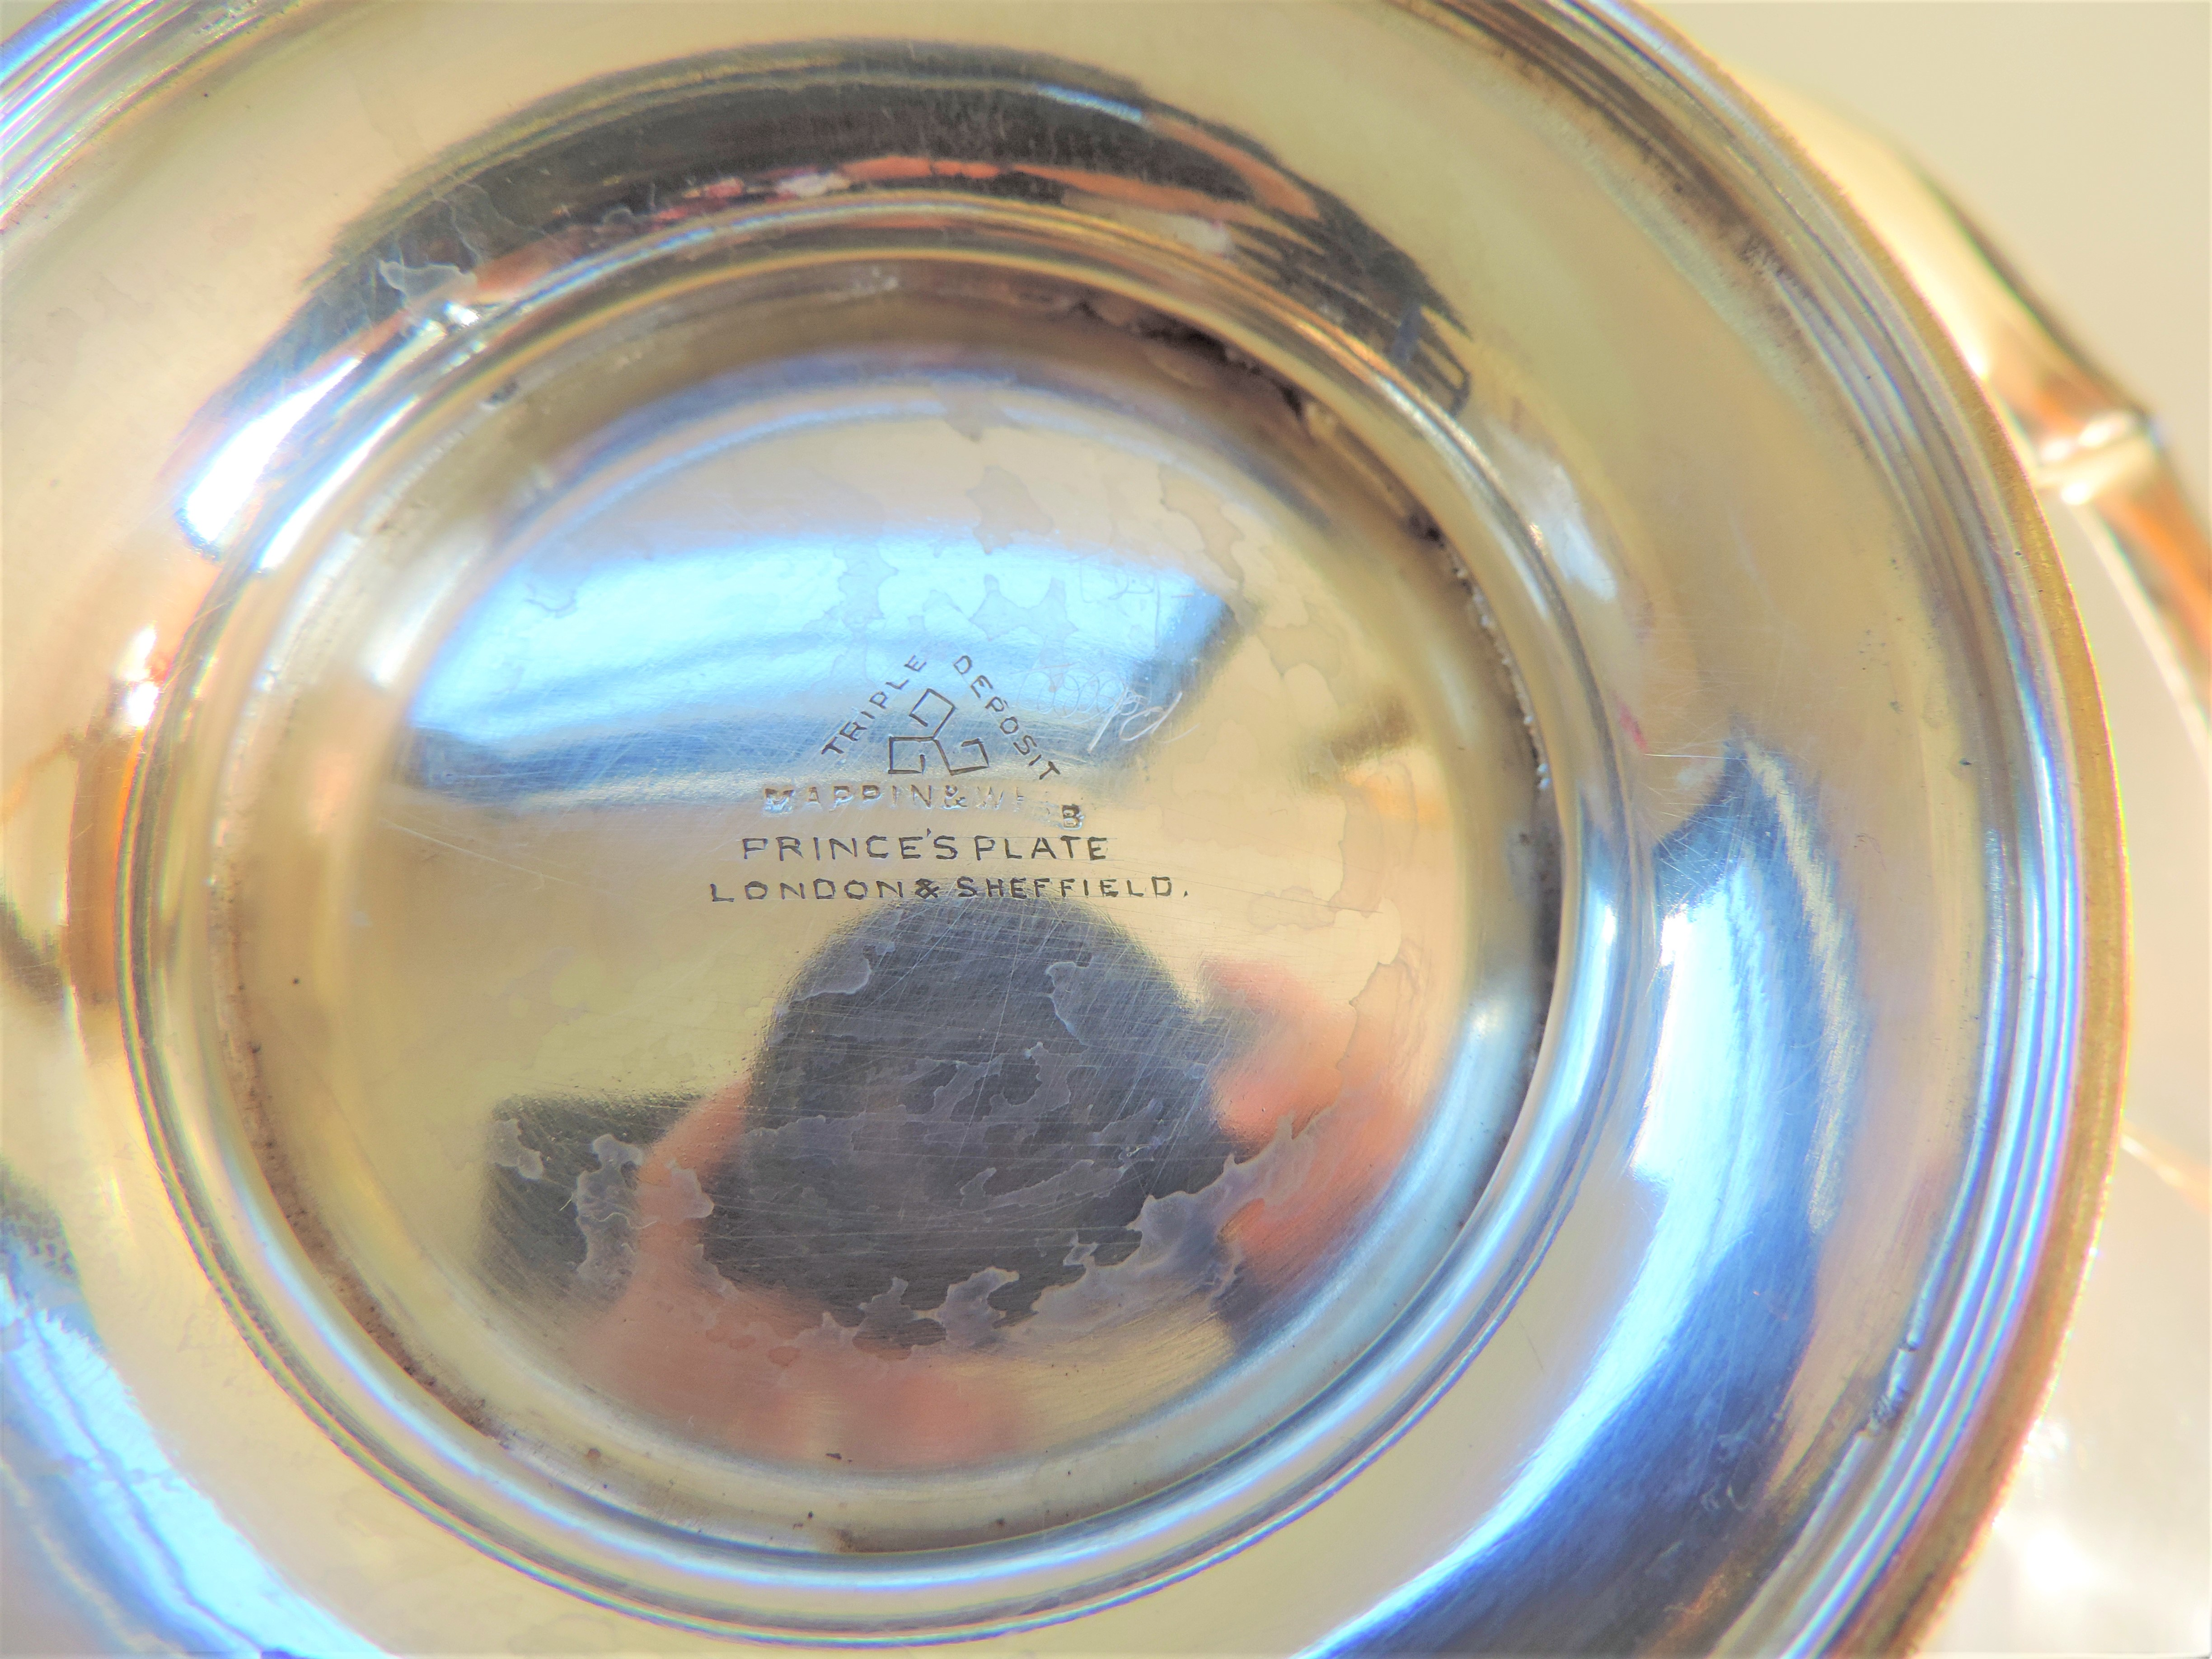 Antique Art Nouveau Mappin & Webb Silver Plated Cake/Bread Basket - Image 5 of 5